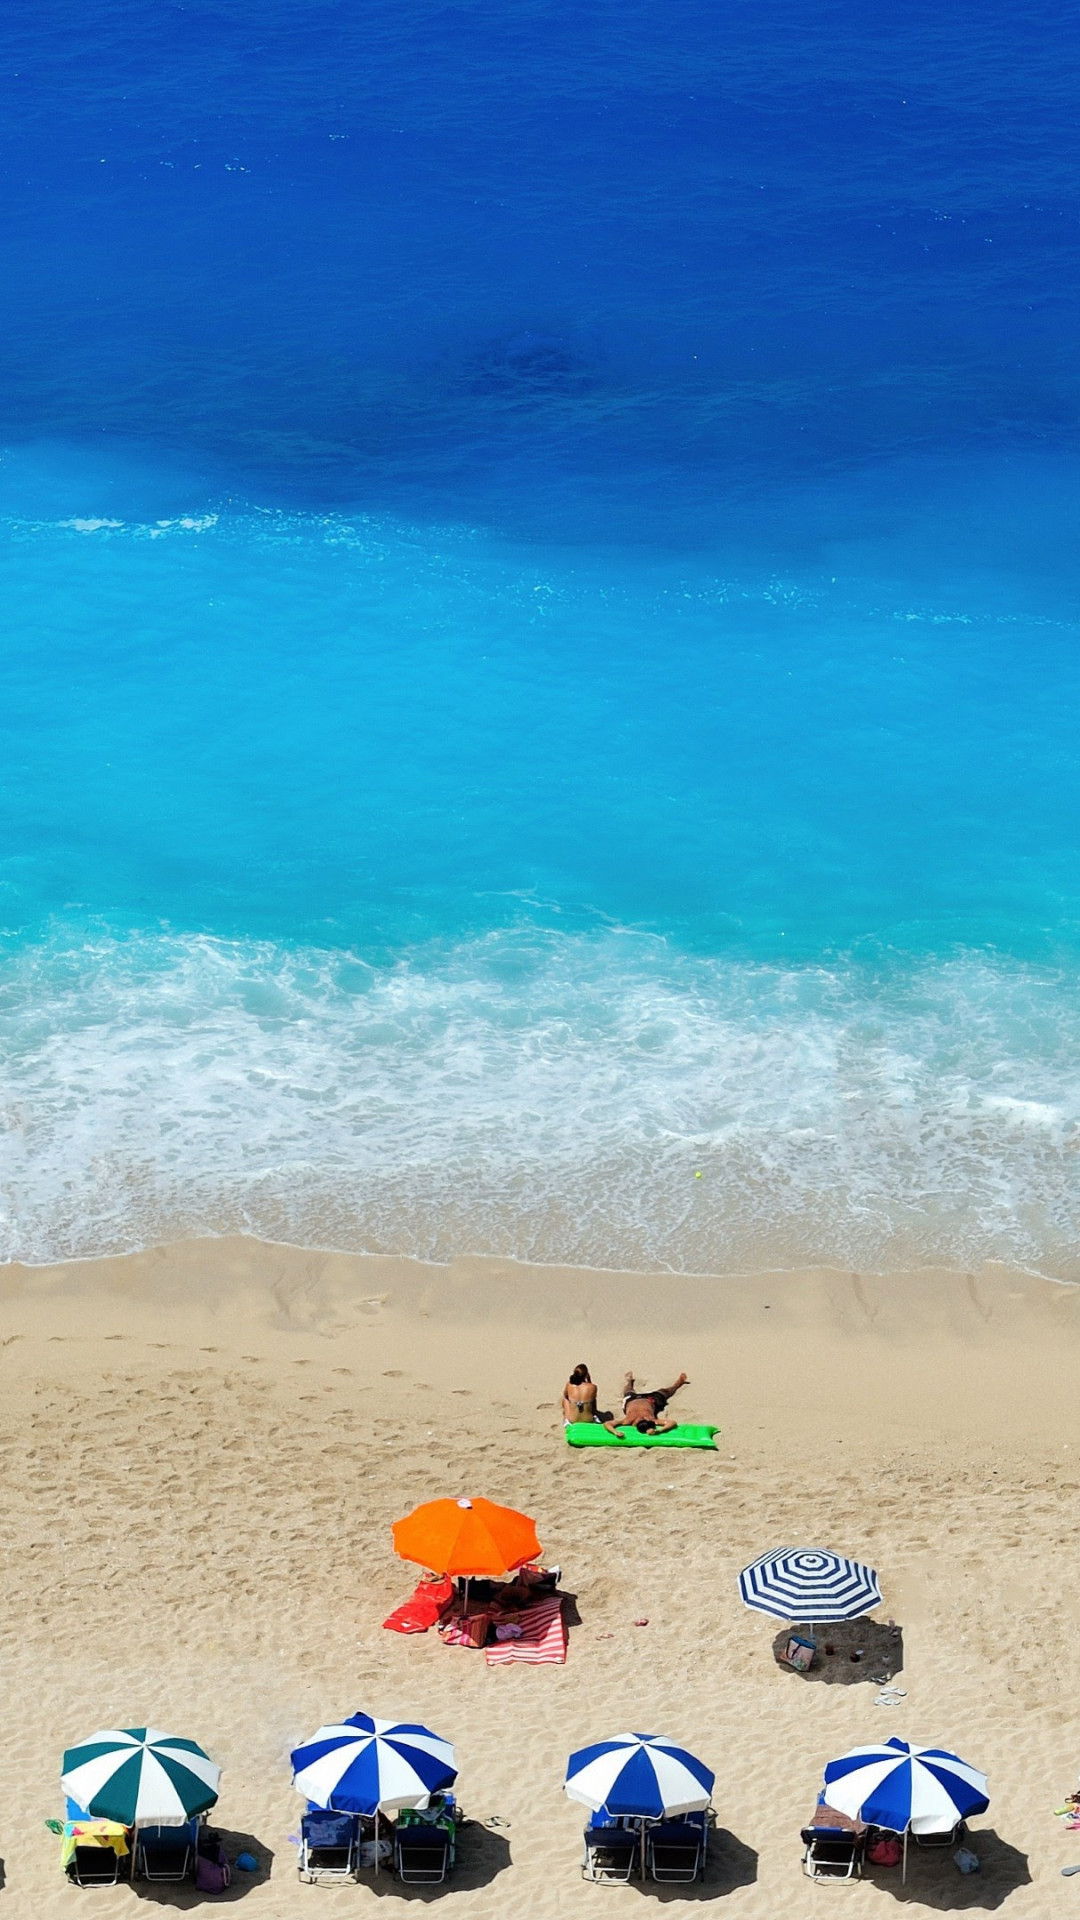 Lefkada Beach wallpaper 1080x1920